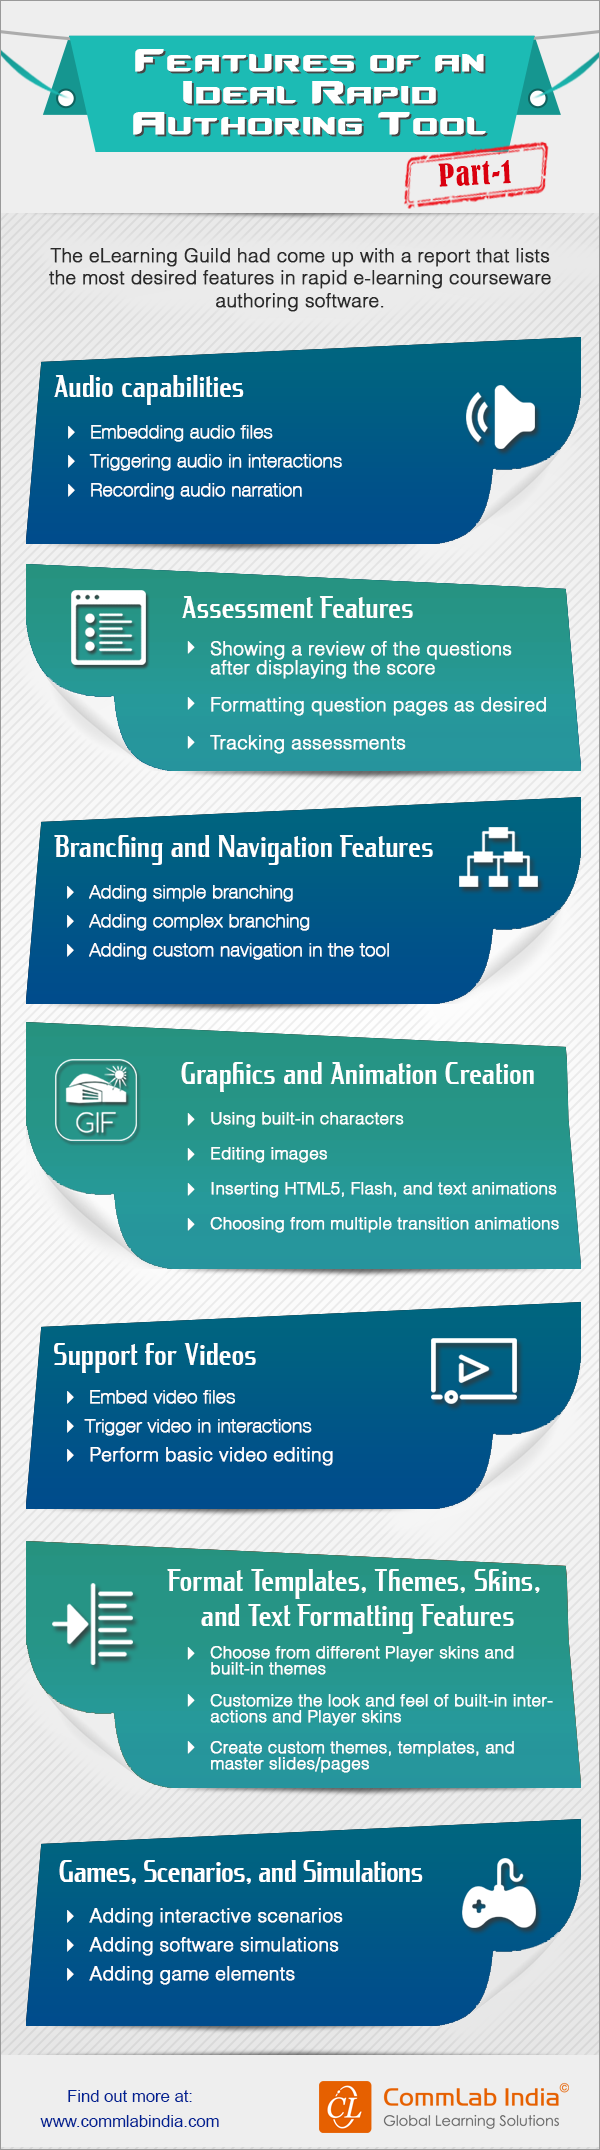 Features of an Ideal Rapid eLearning Authoring Tool – Part ...